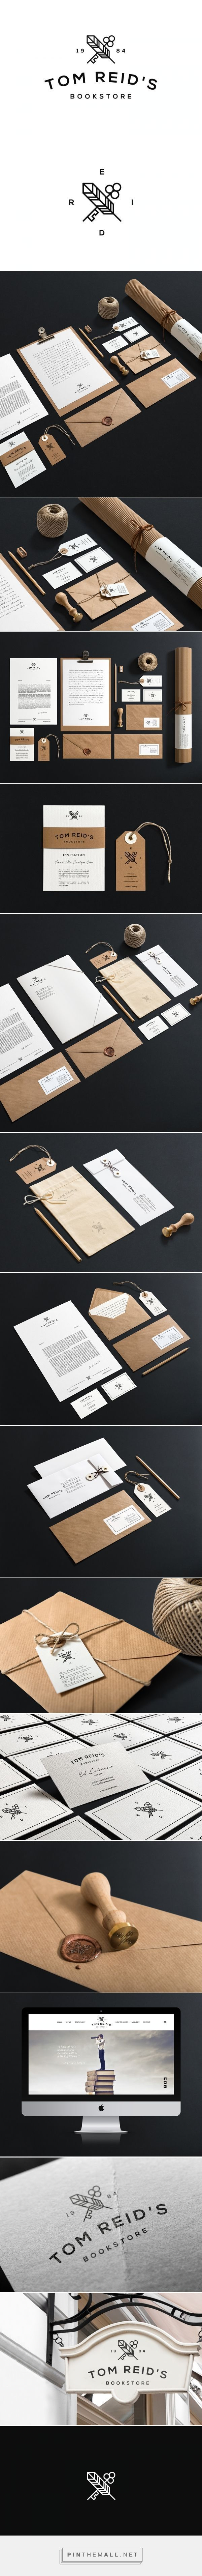 Tom Reid's Bookstore on Behance branding stationary corporate identity label business card letterhead enveloppe craftpaper logo icon stamp wax minimalistic graphic design. If you're a user experience professional, listen to The UX Blog Podcast on iTunes.